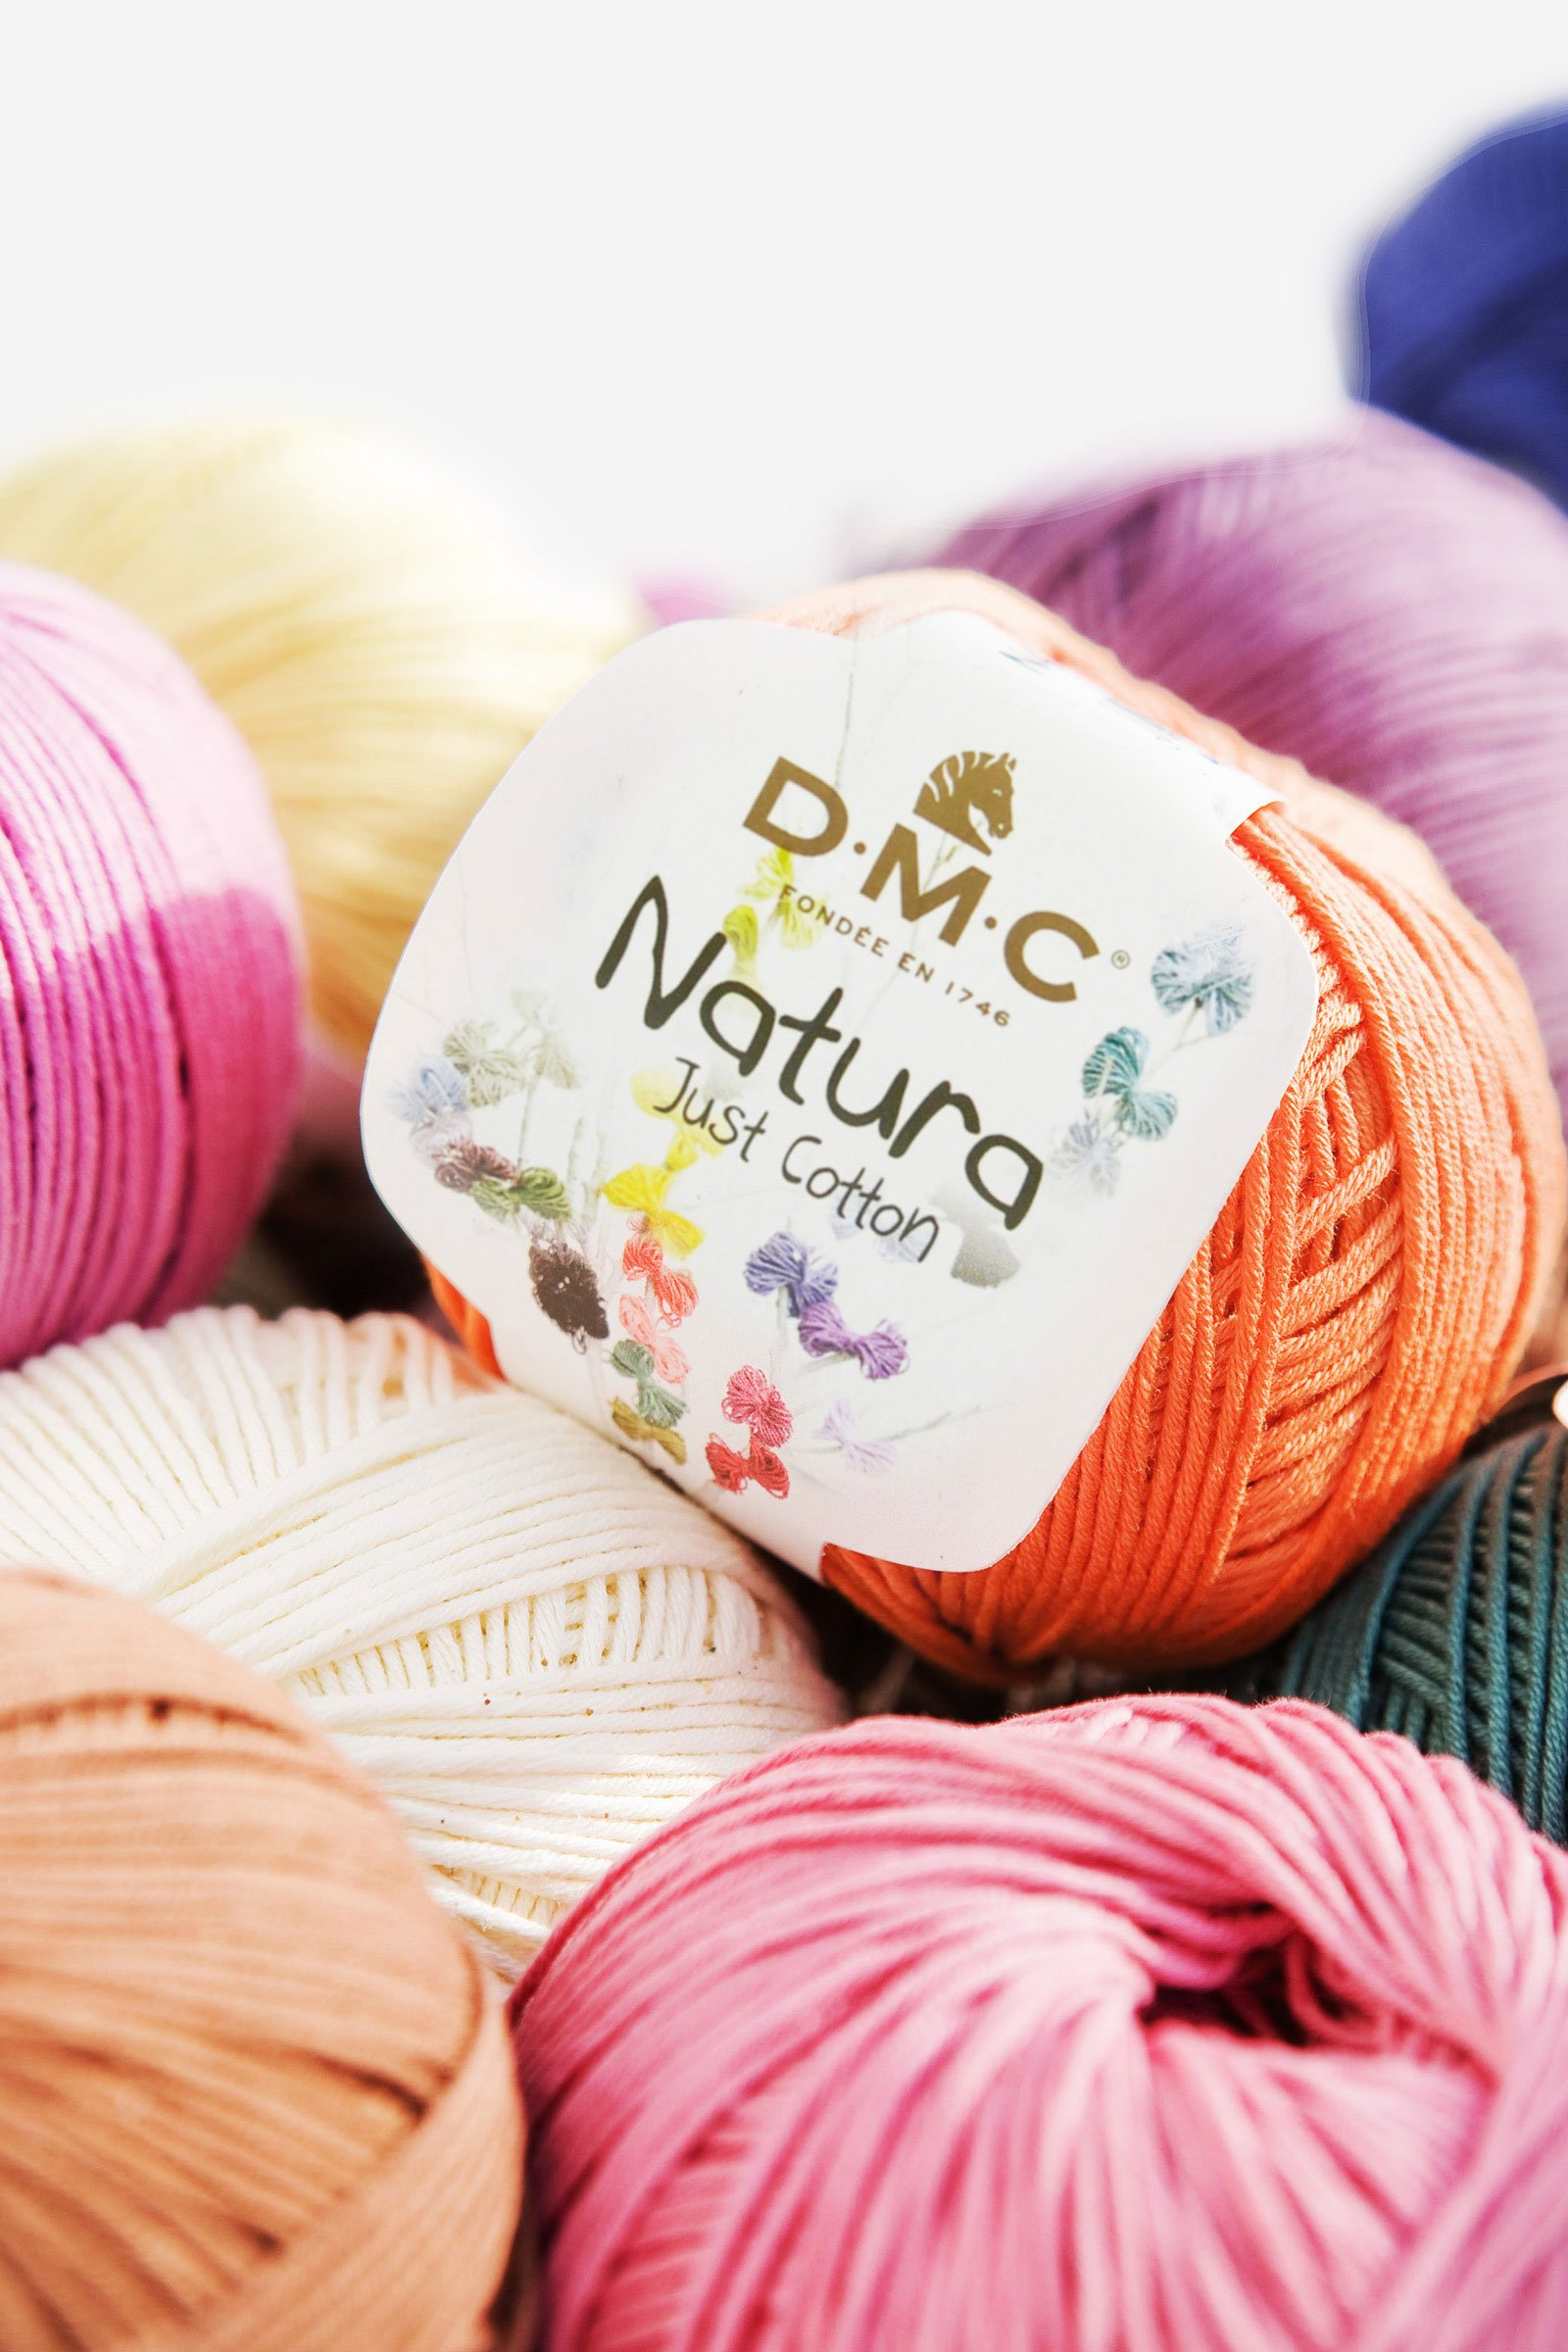 Natura just cotton art. 302 hilo para tricot y ganchillo